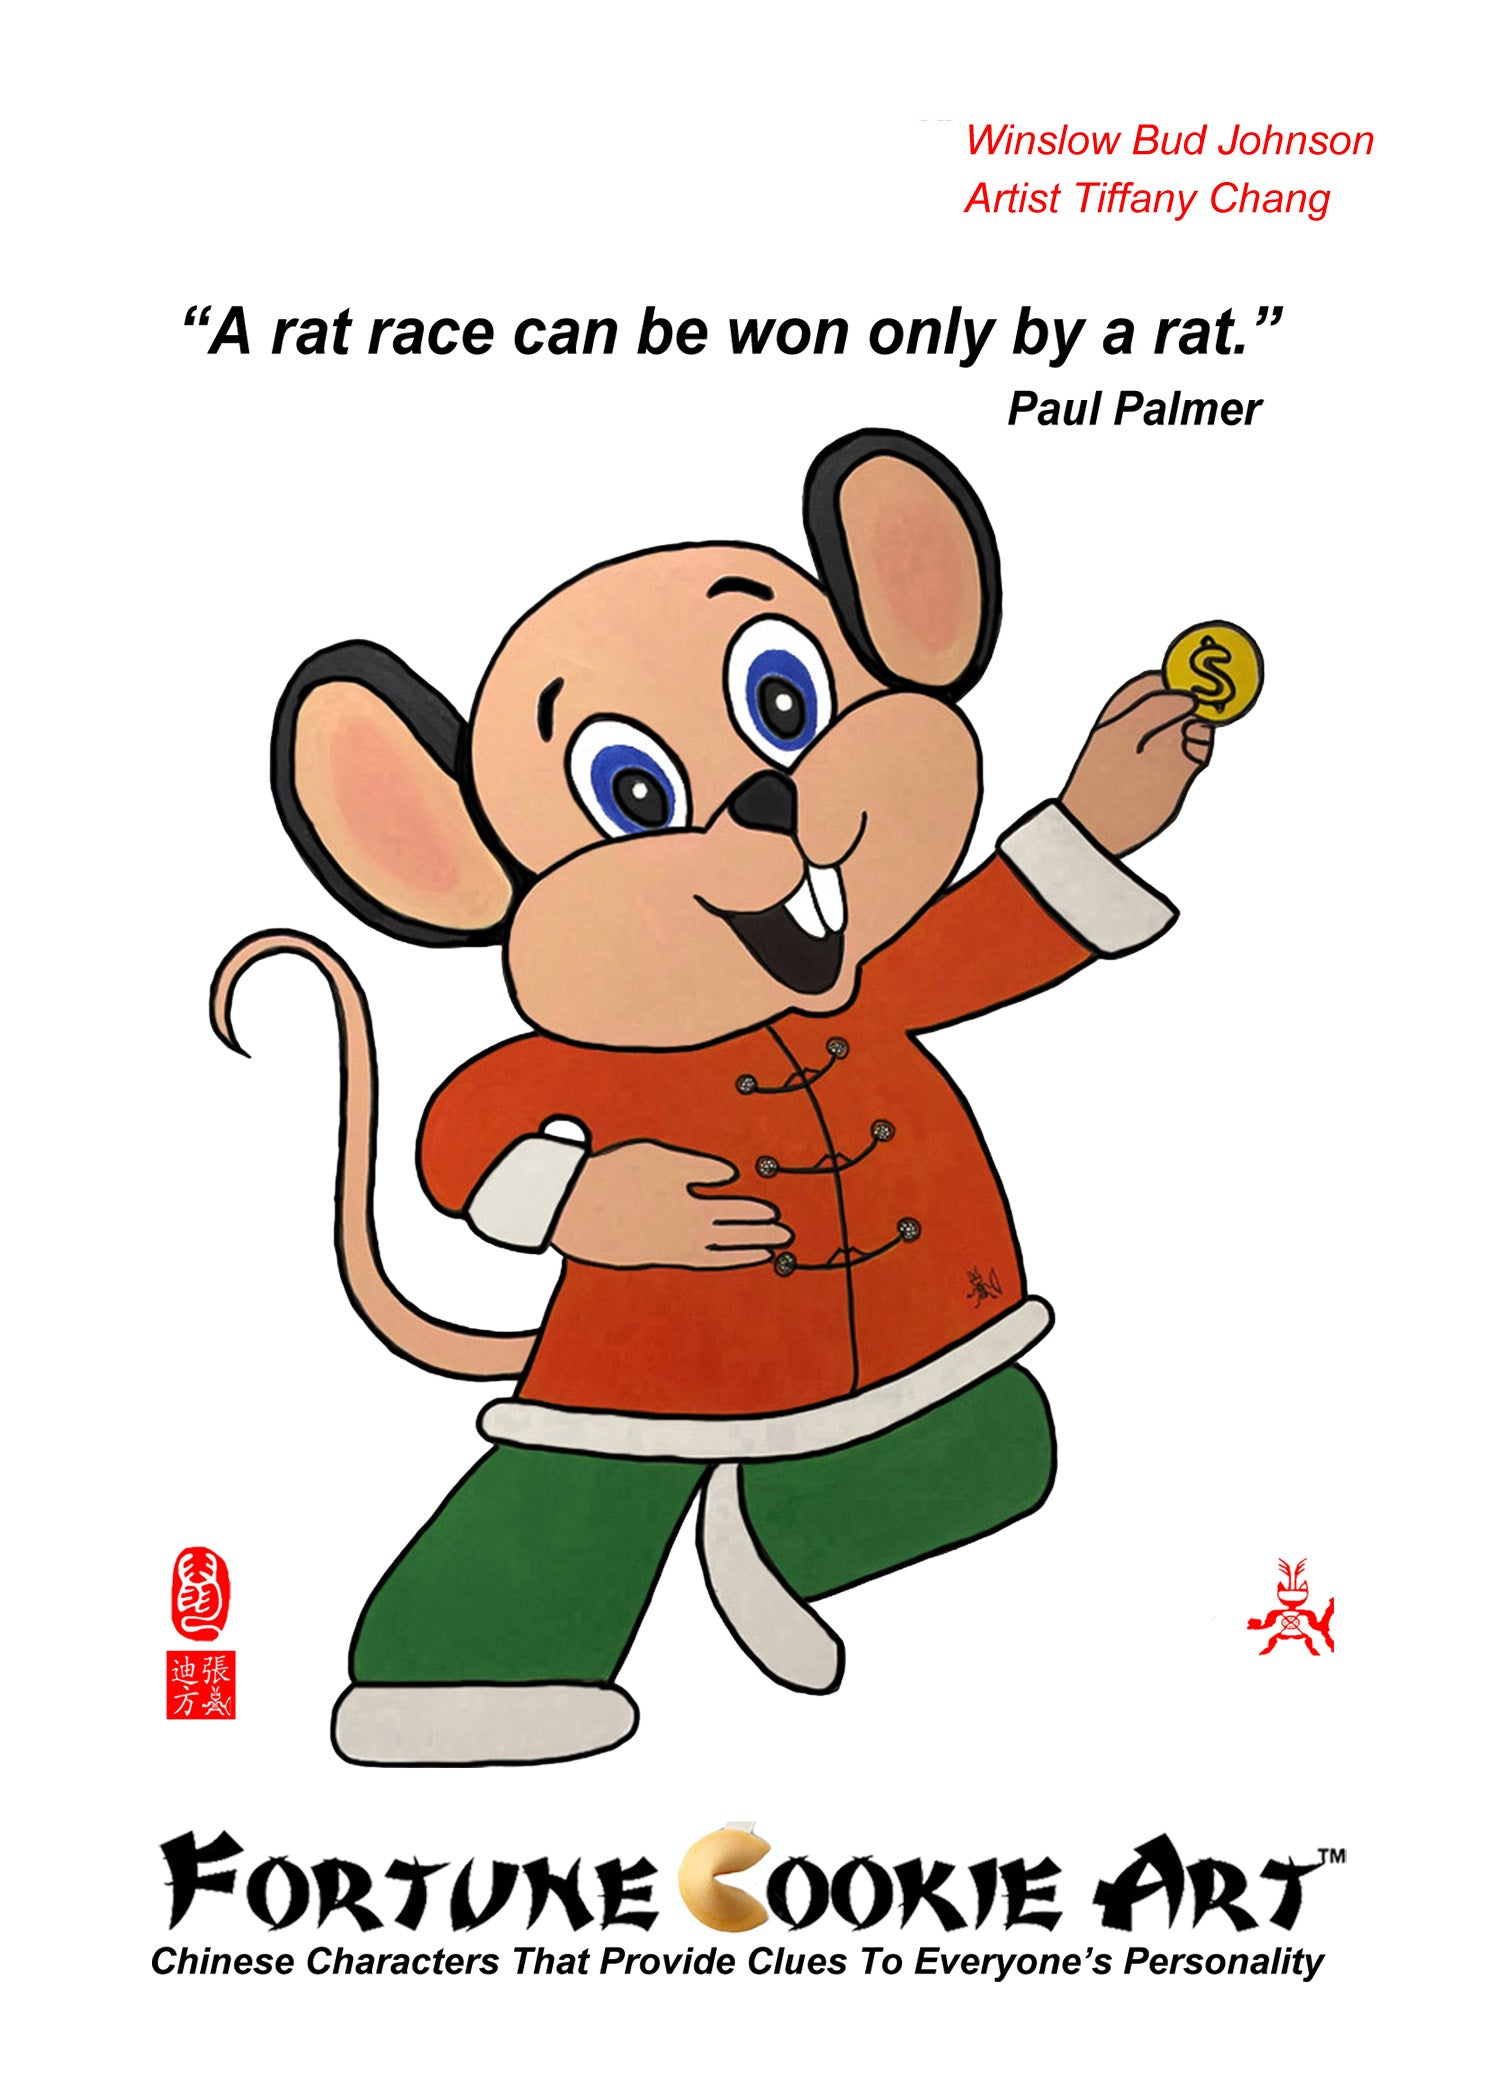 Fortune Cookie Art - The Resourceful Rat